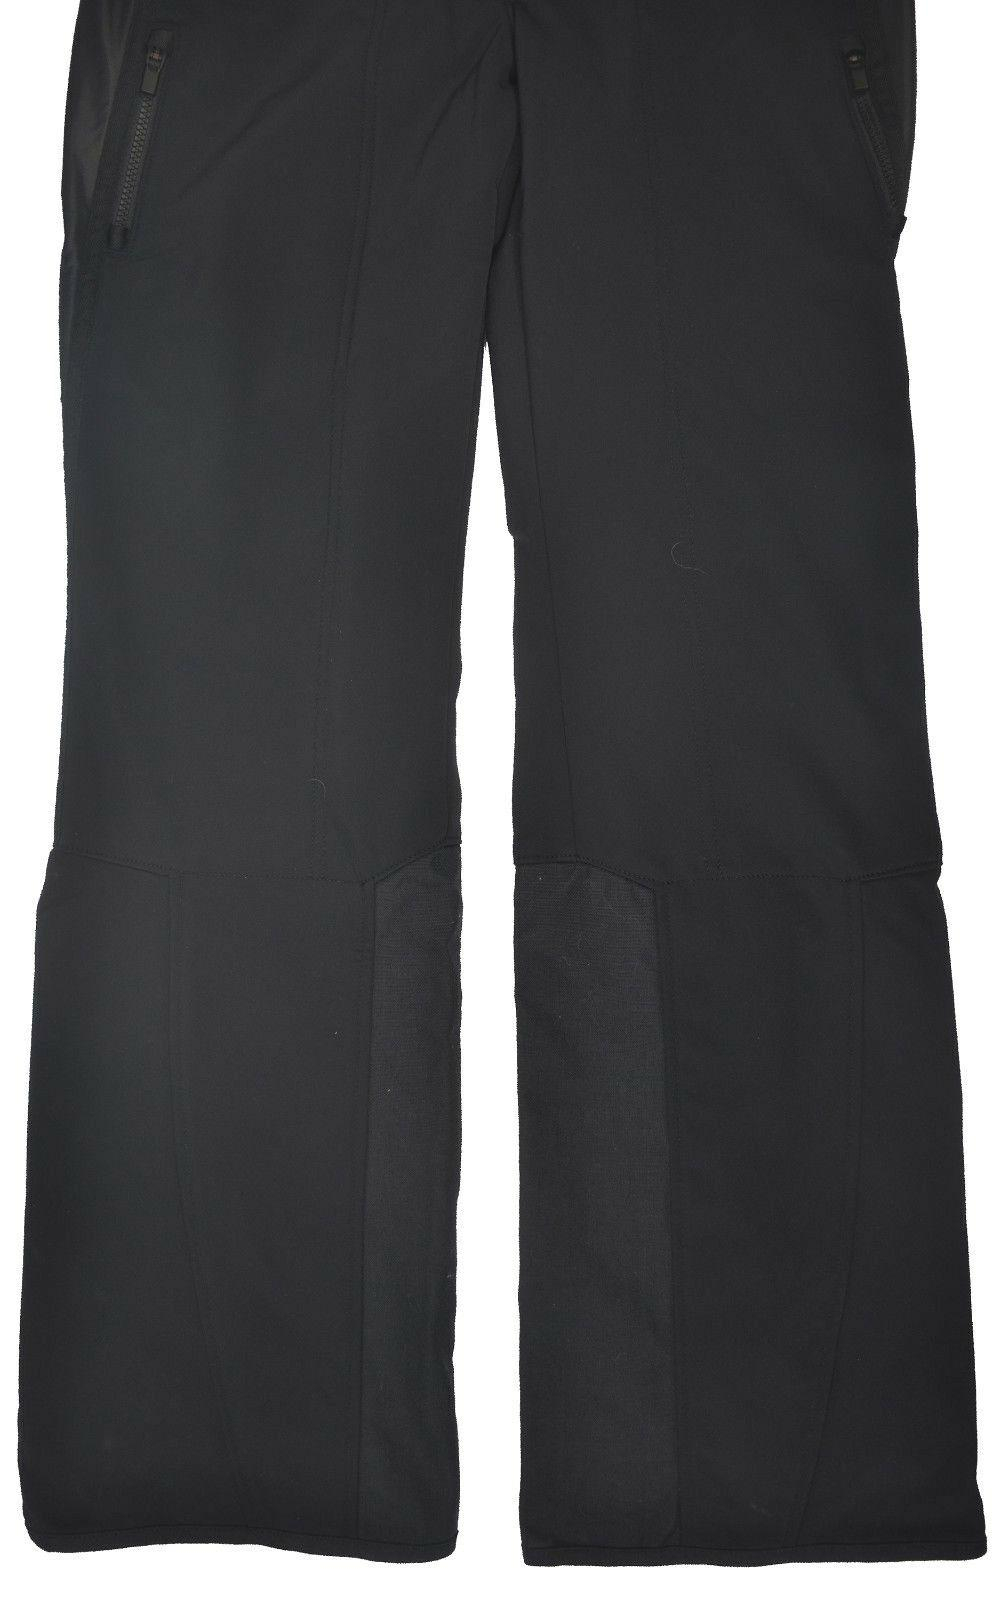 NWT Athleta Black Sold Out 10T &